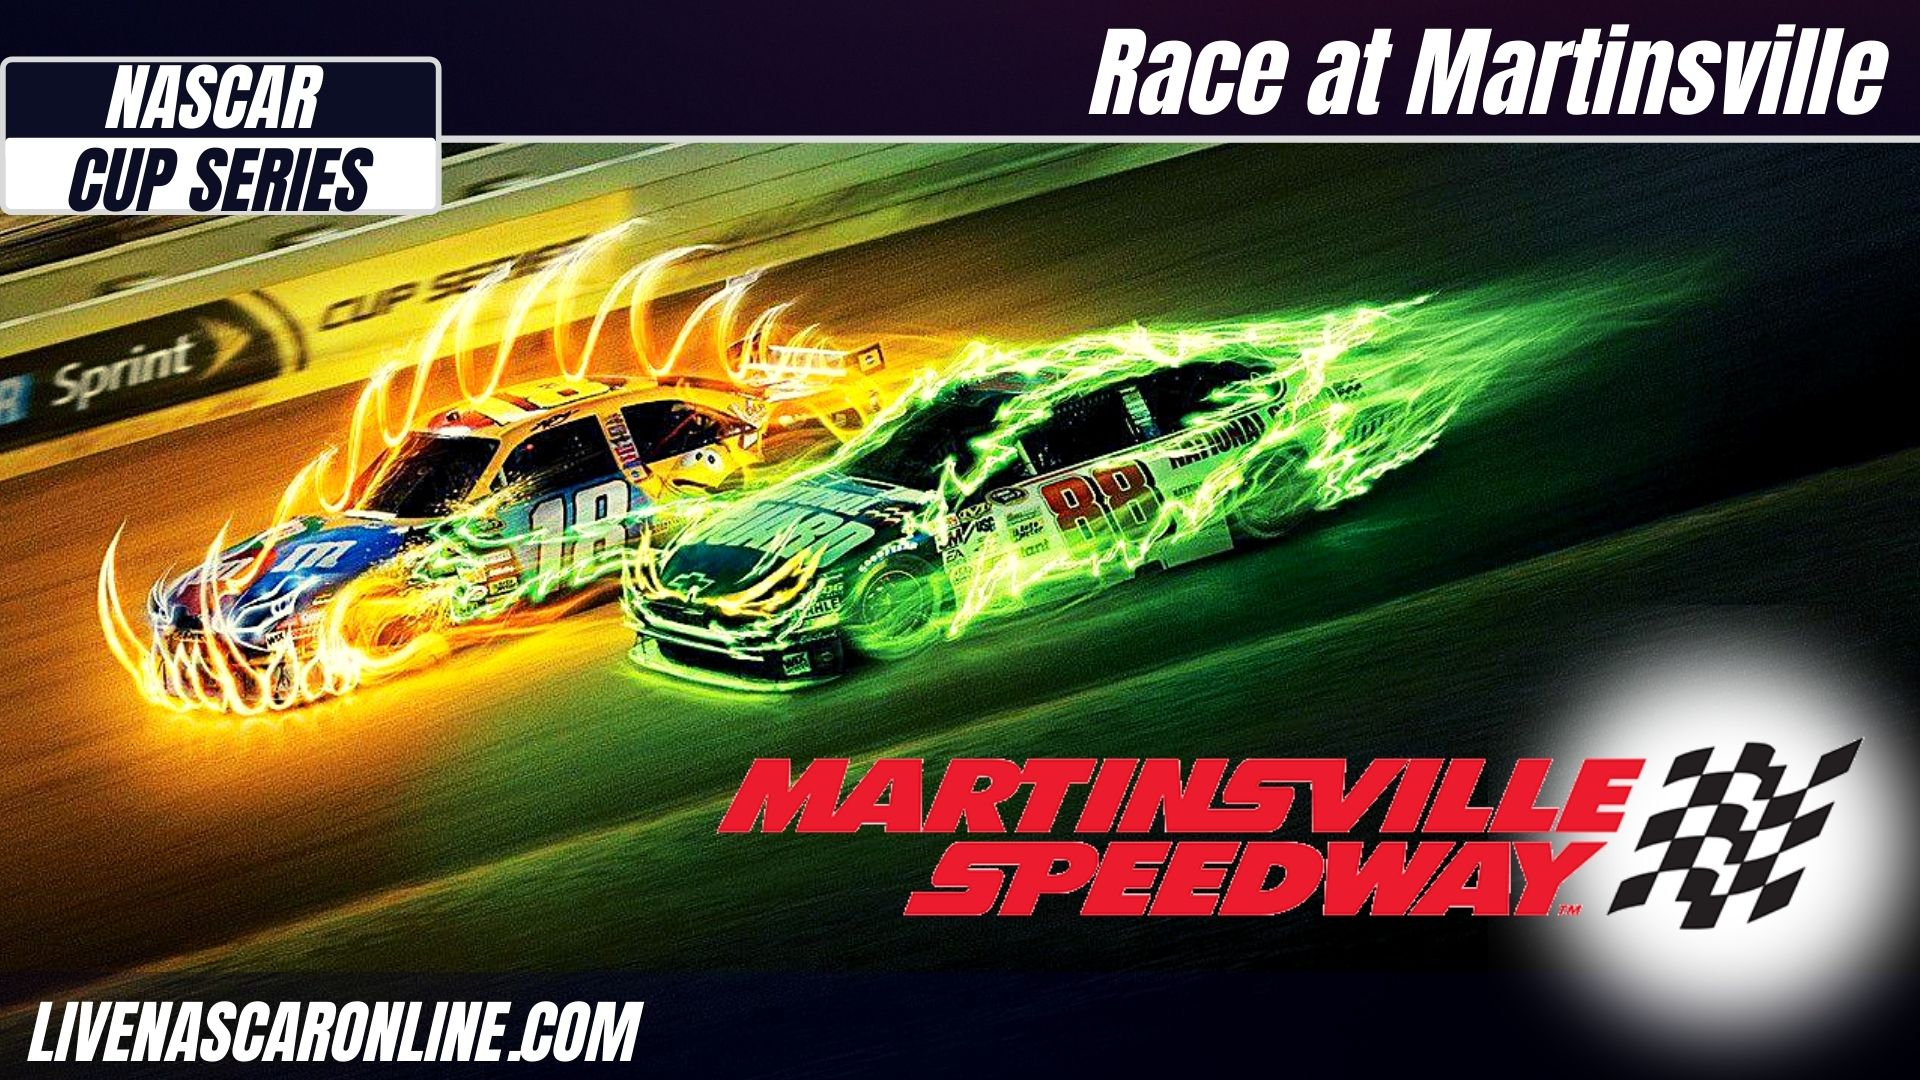 NASCAR Cup Series at Martinsville Live Stream